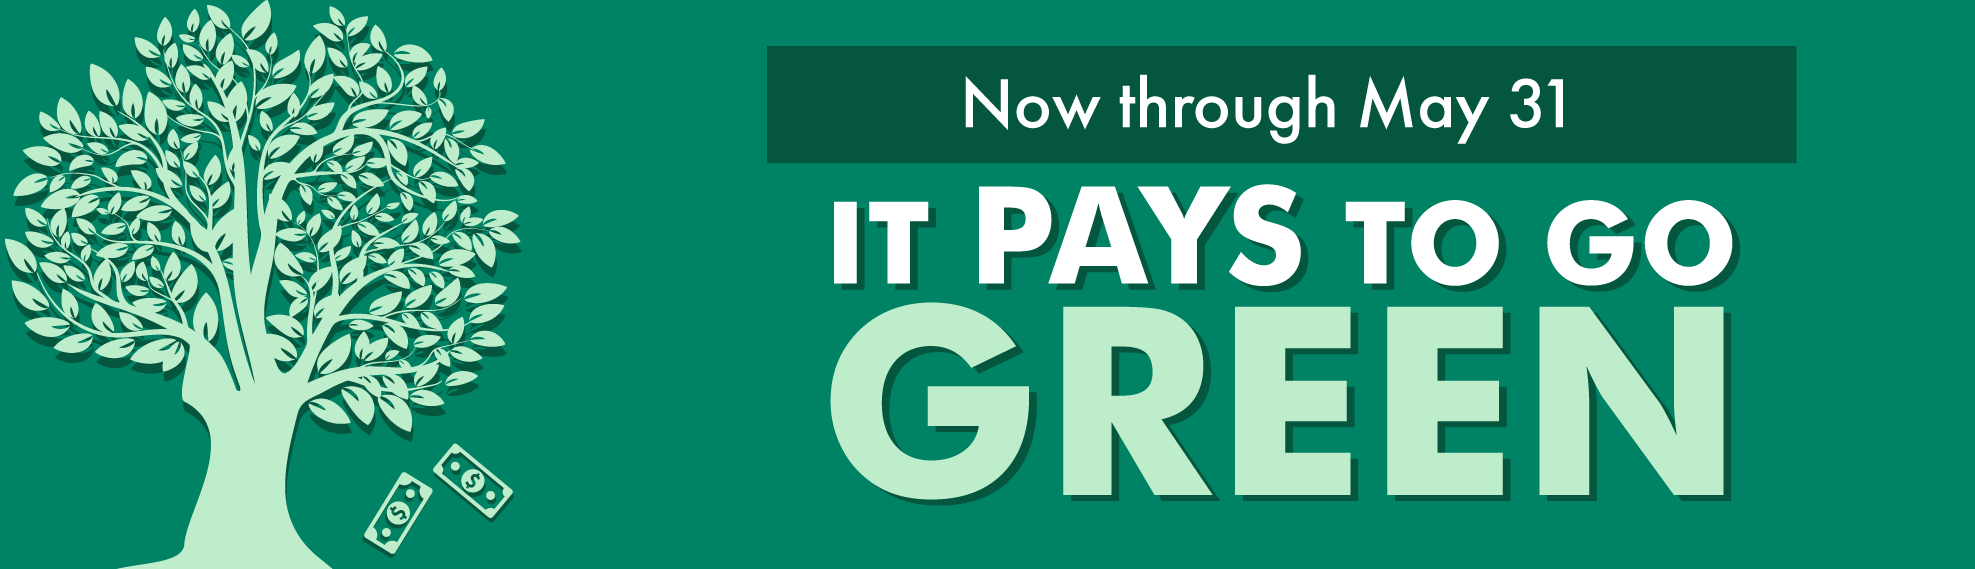 now through may 31 it pays to go green